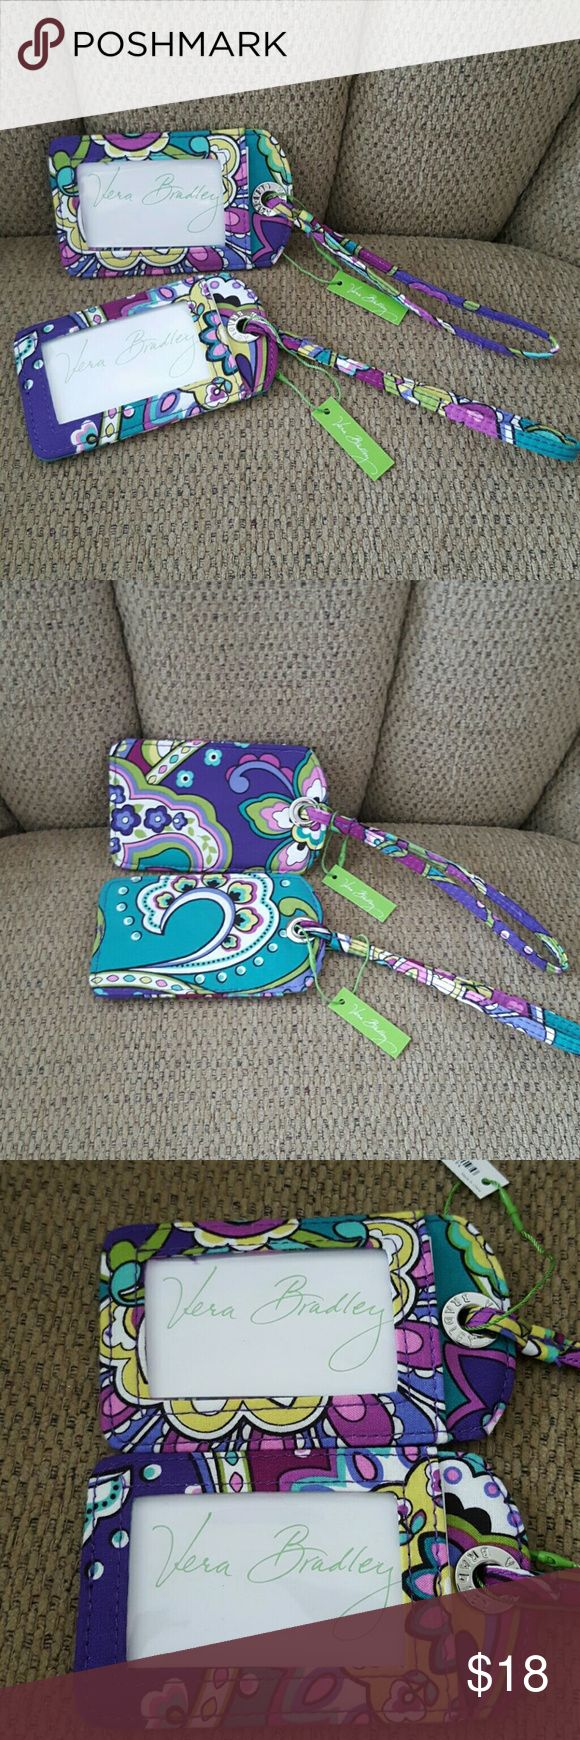 2 VERA BRADLEY LUGGAGE TAGS New with tags   IN  HEATHER pattern Vera Bradley Accessories